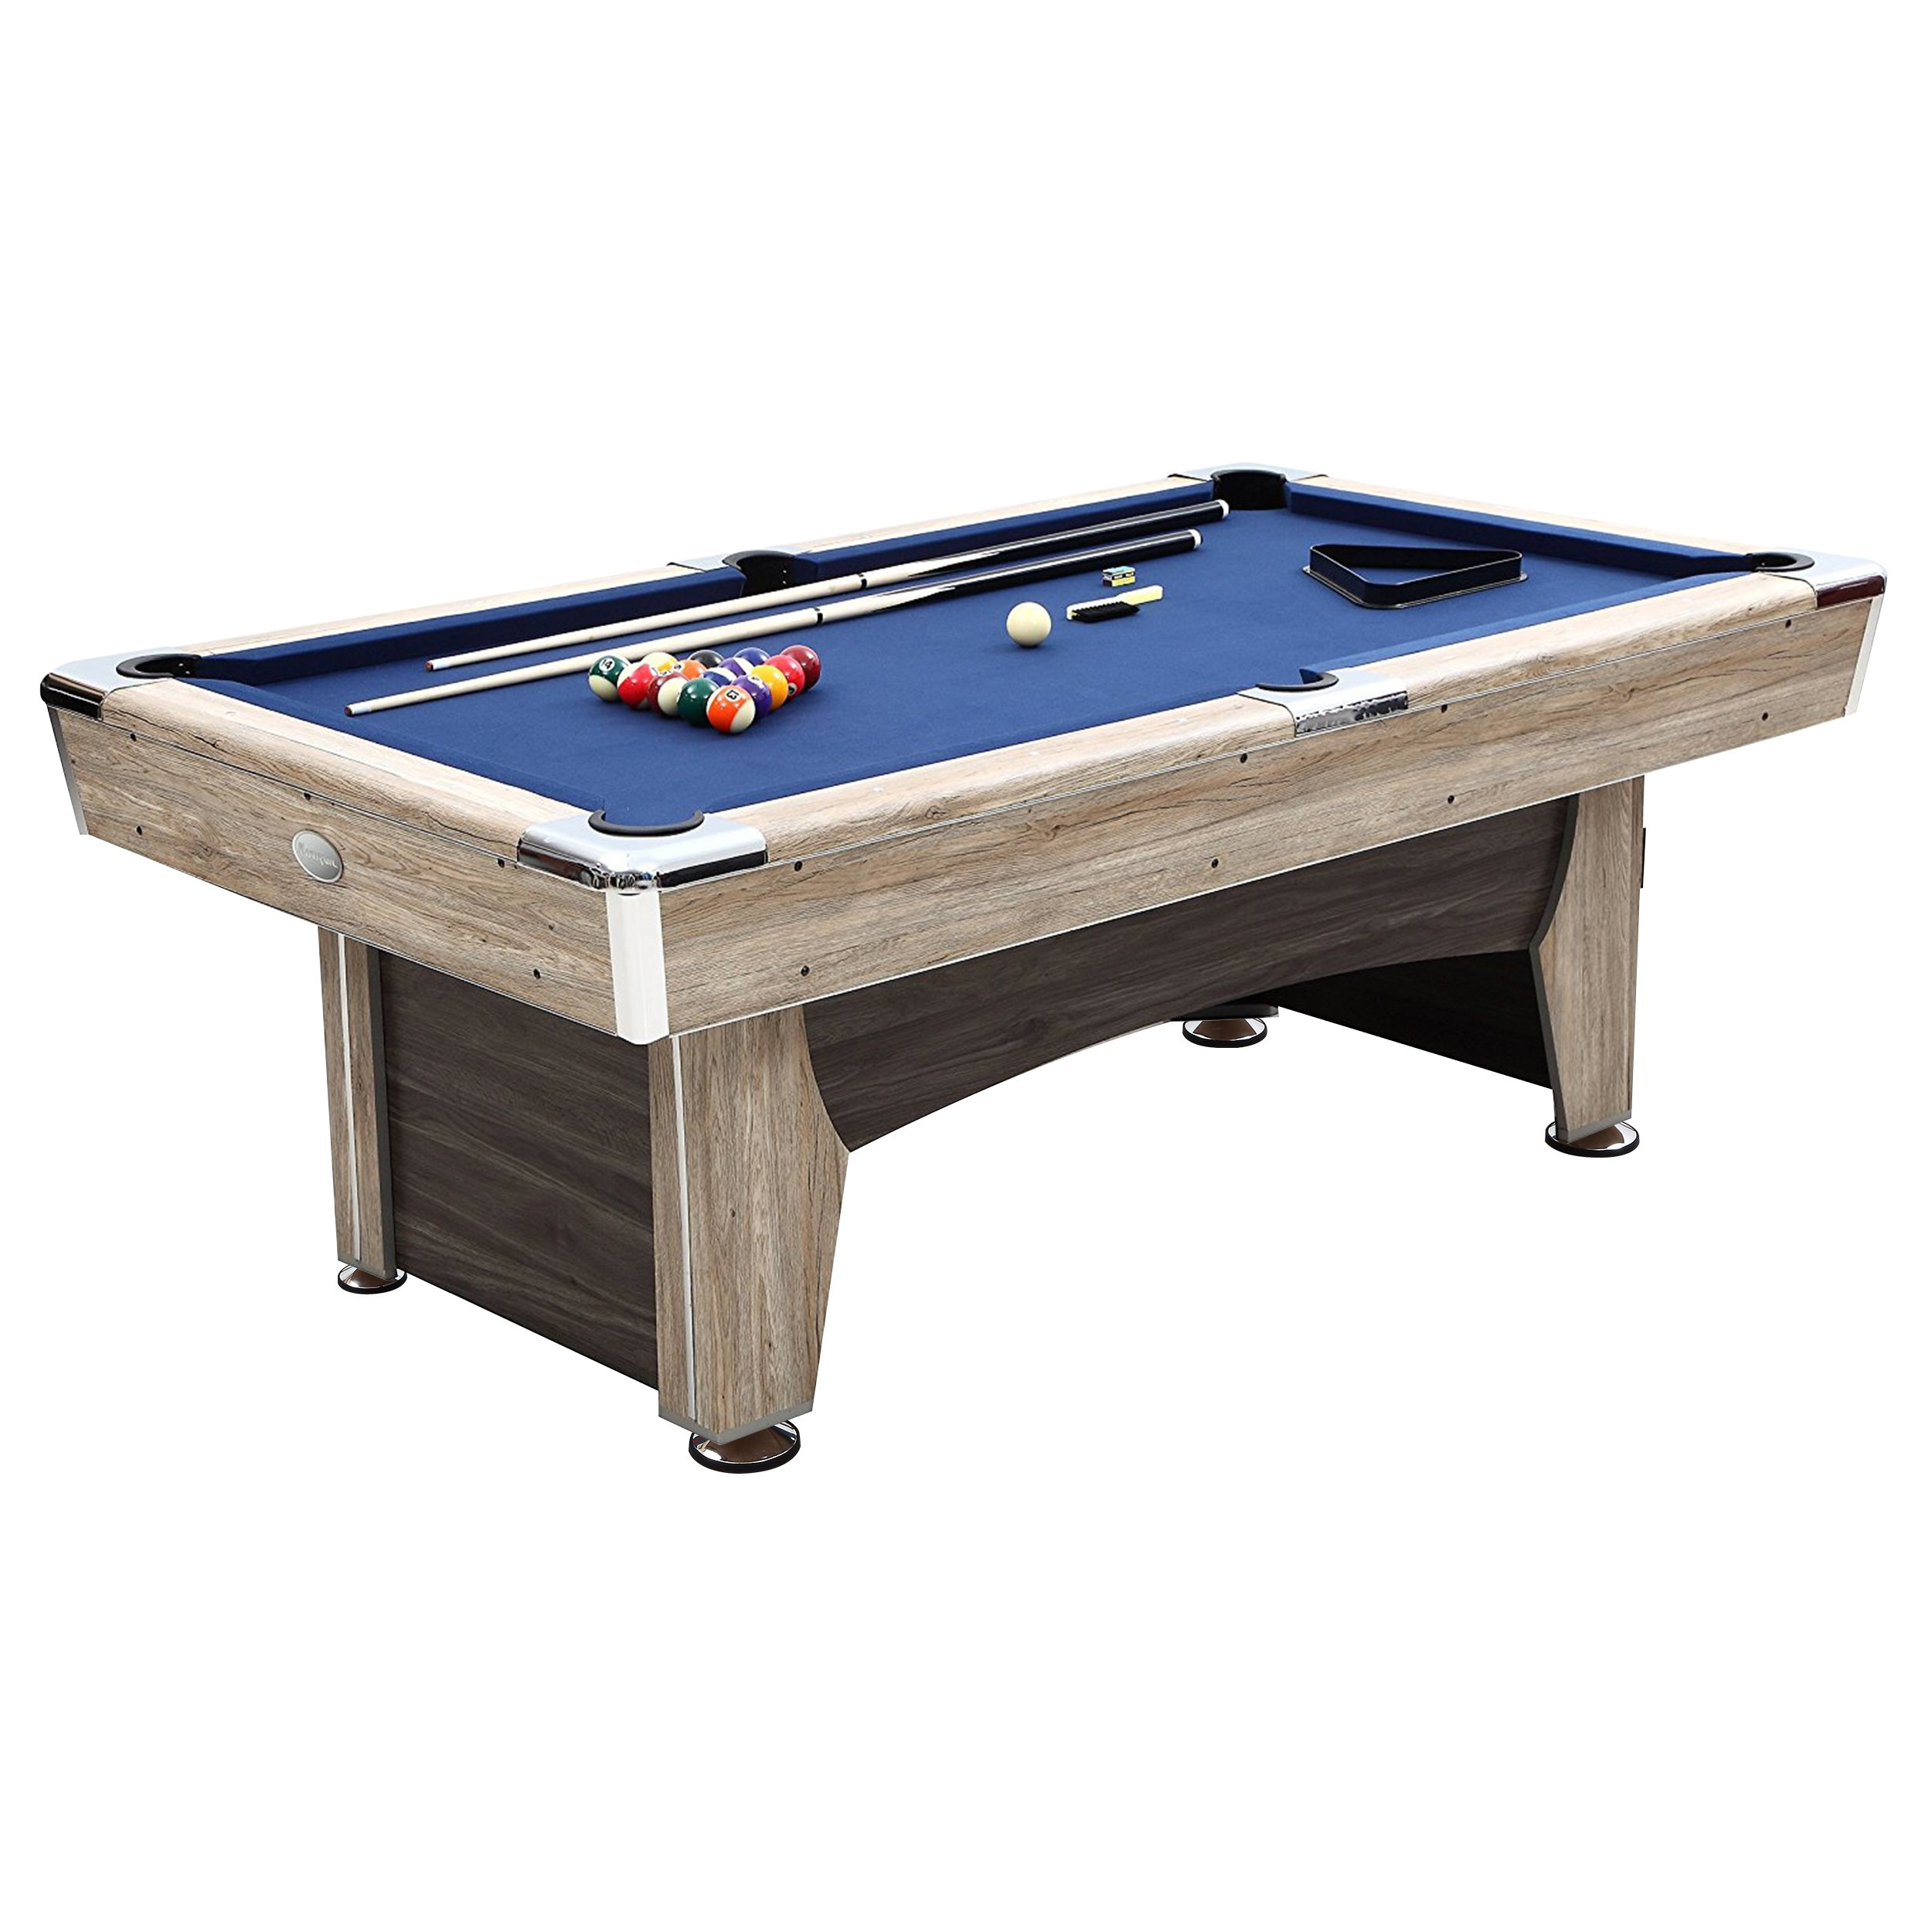 Harvil Beachcomber Pool Table 84 Inches with Free Complete Accessories Set by Harvil